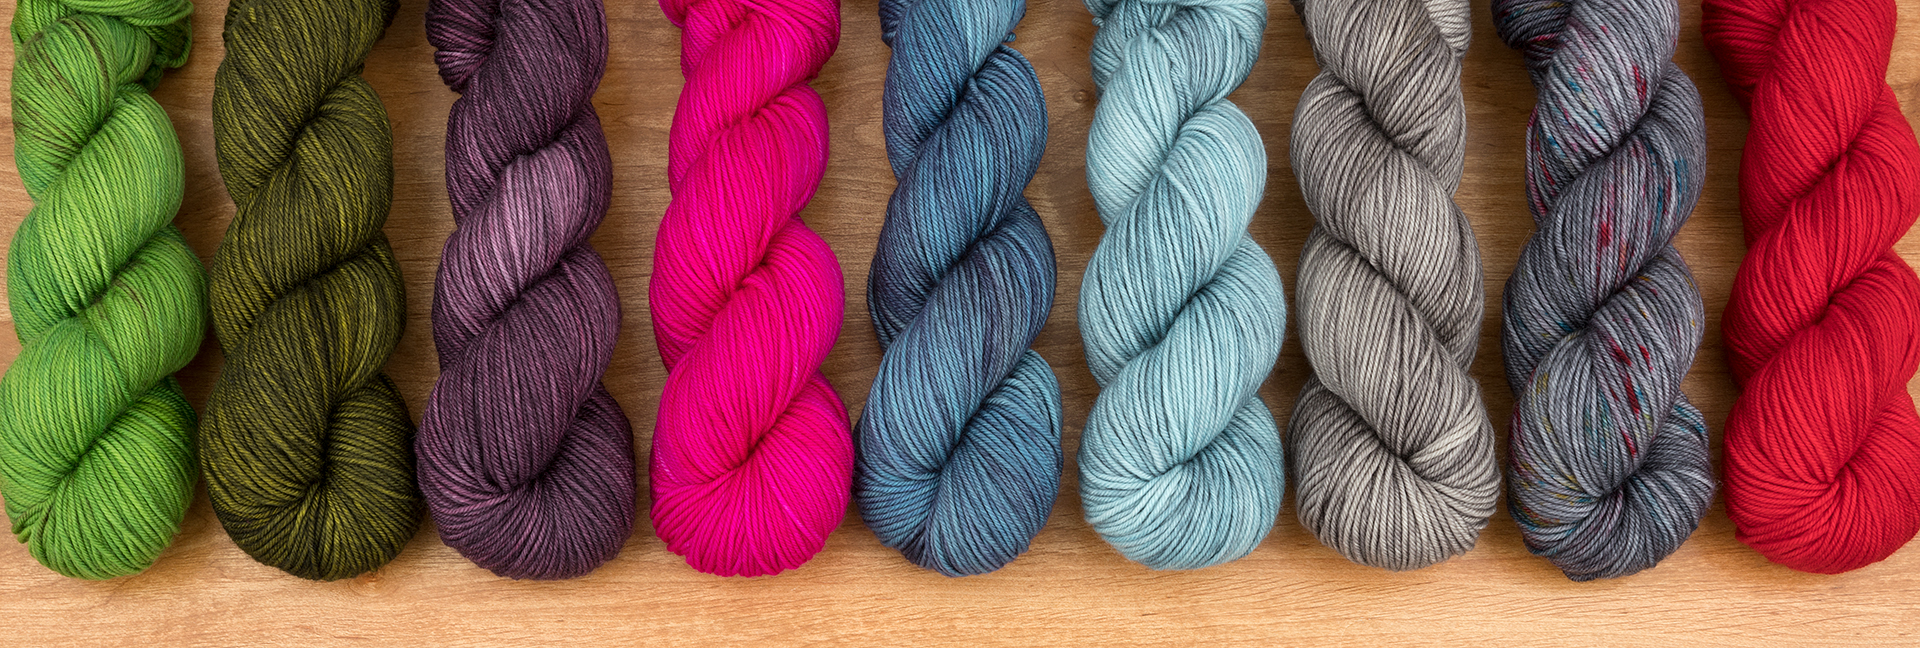 The Uncommon Thread Lush Worsted The Loopy Ewe